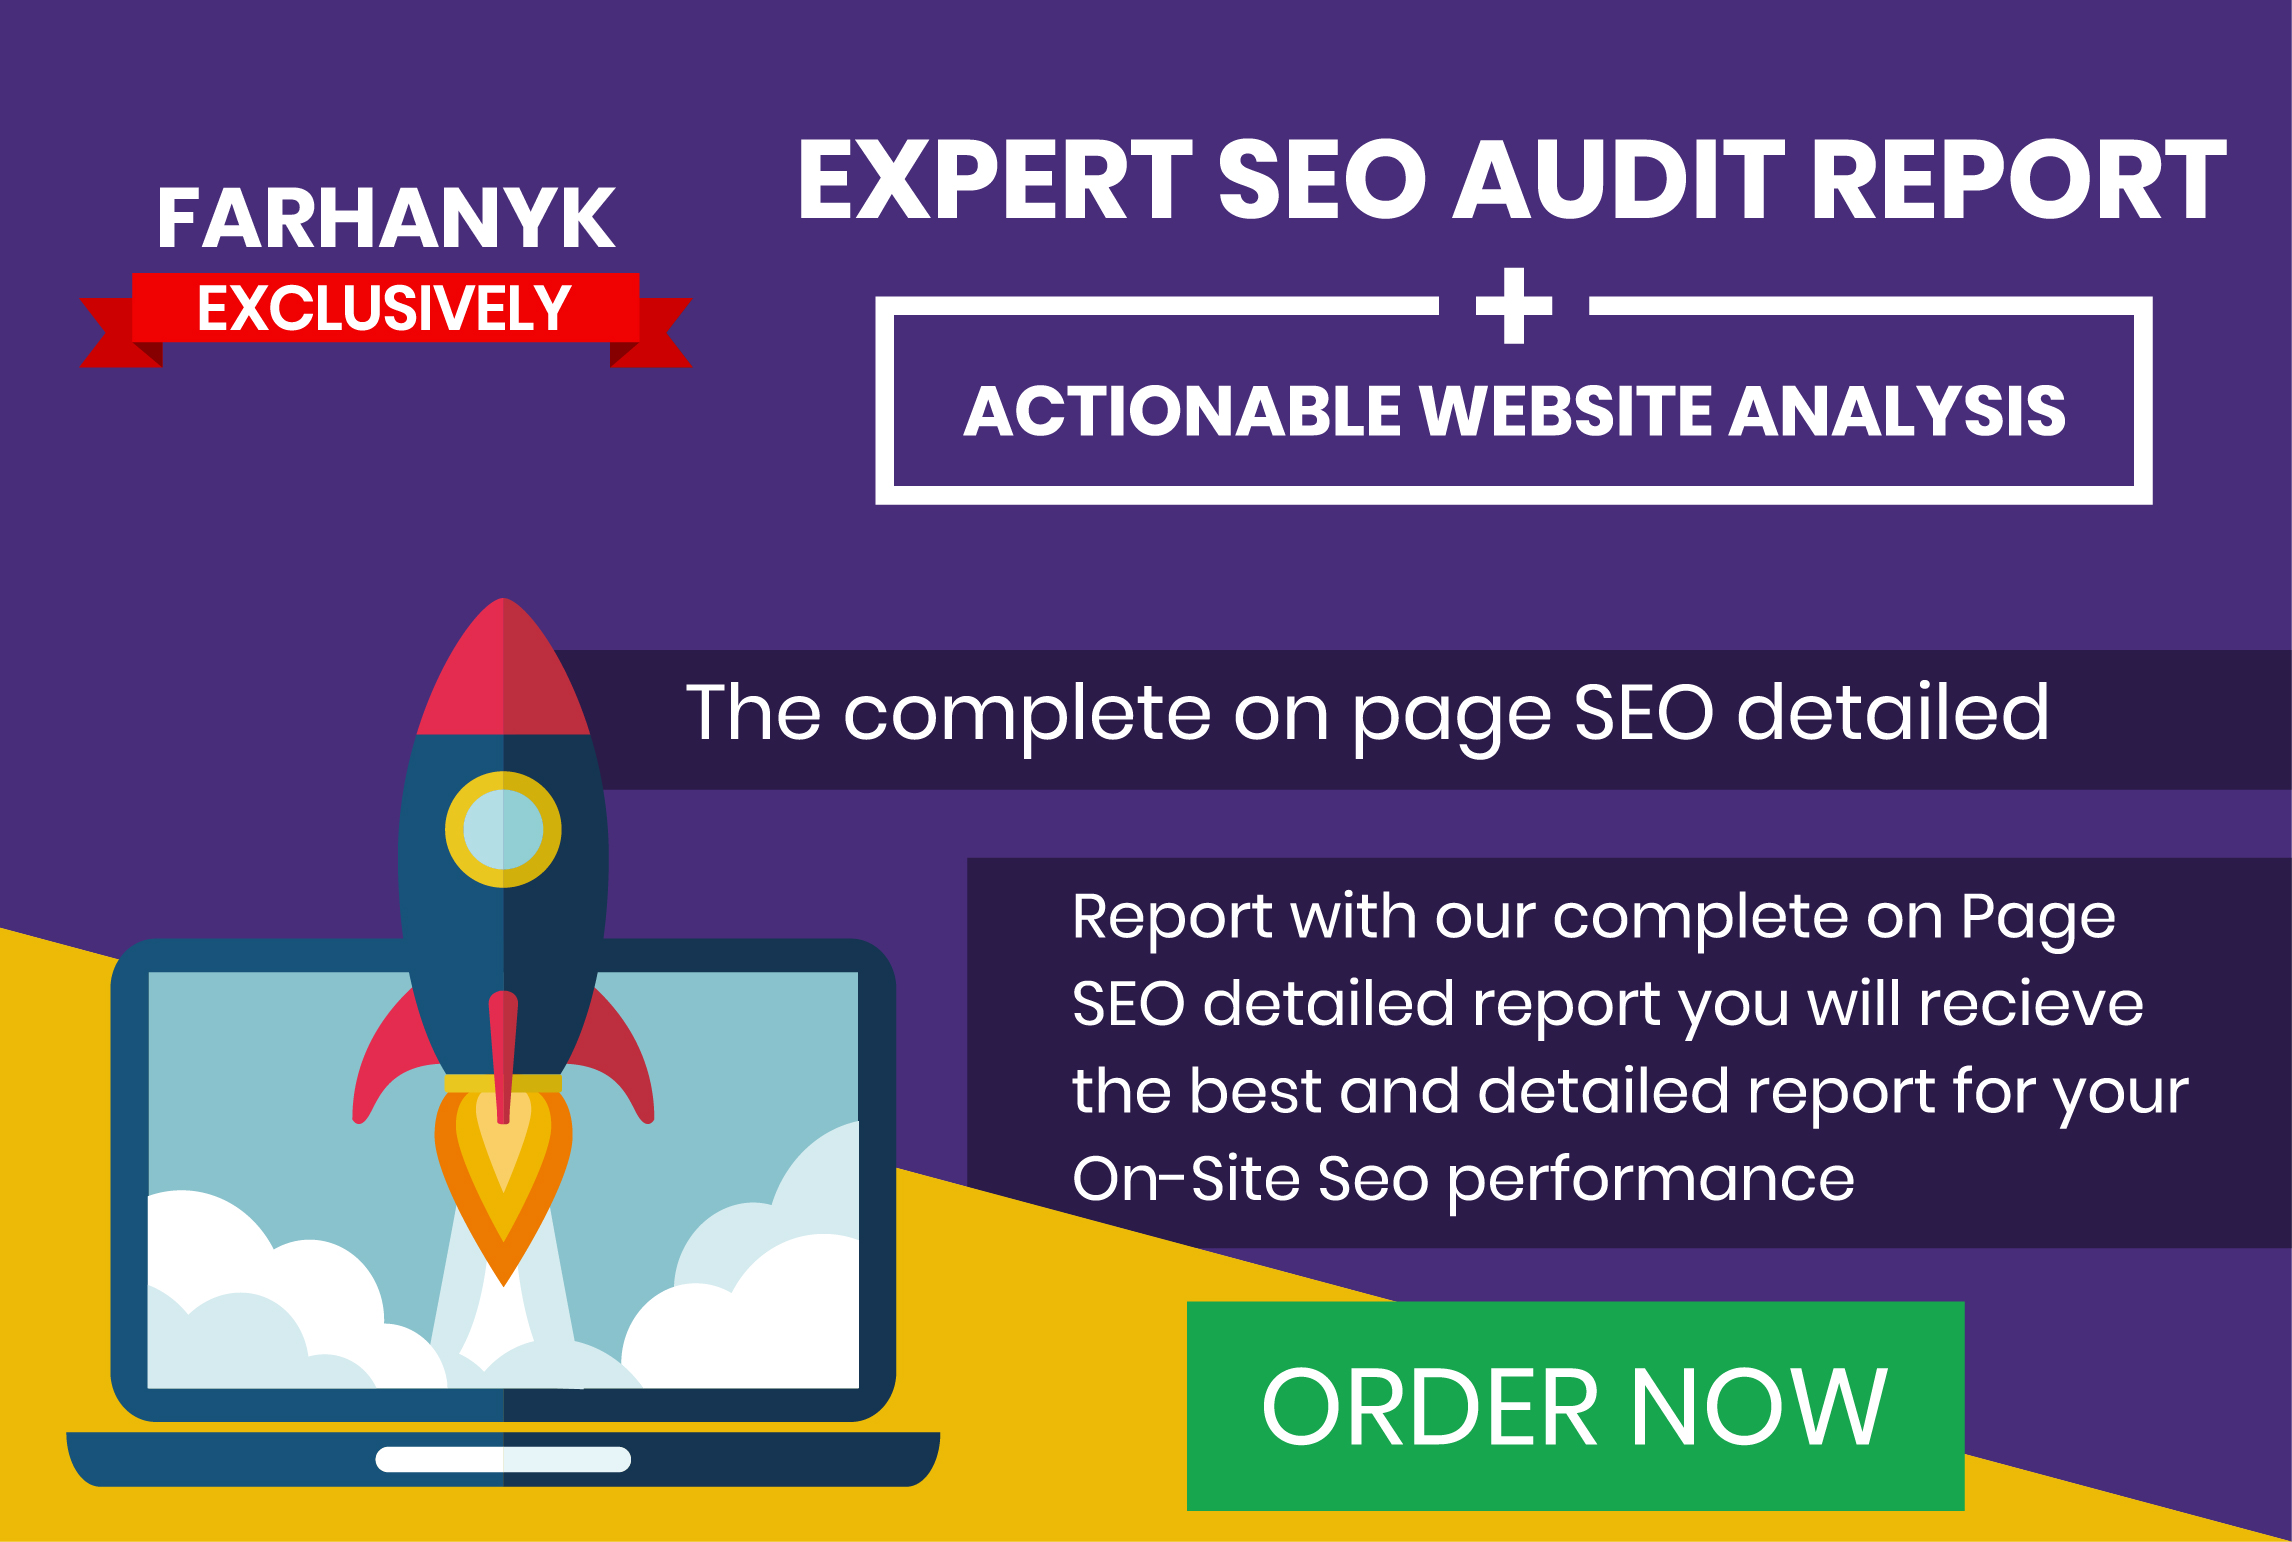 give u a professional step by step SEO audit report for your website